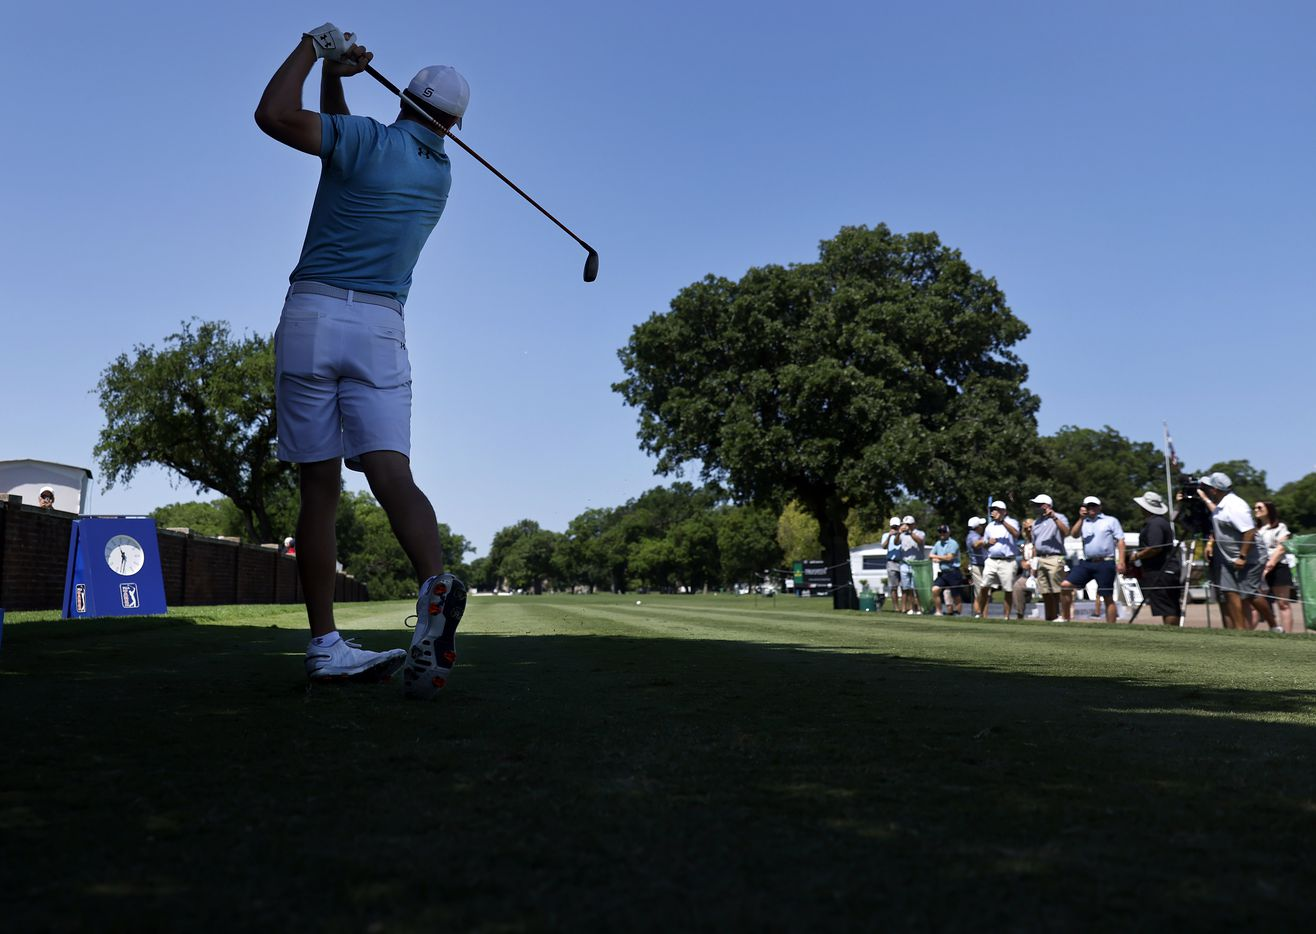 Golfer Jordan Spieth starts his half round by teeing off on No. 10 during his Charles Schwab Challenge Colonial Pro-Am round at the Colonial Country Club in Fort Worth, Wednesday, May 26, 2021. (Tom Fox/The Dallas Morning News)